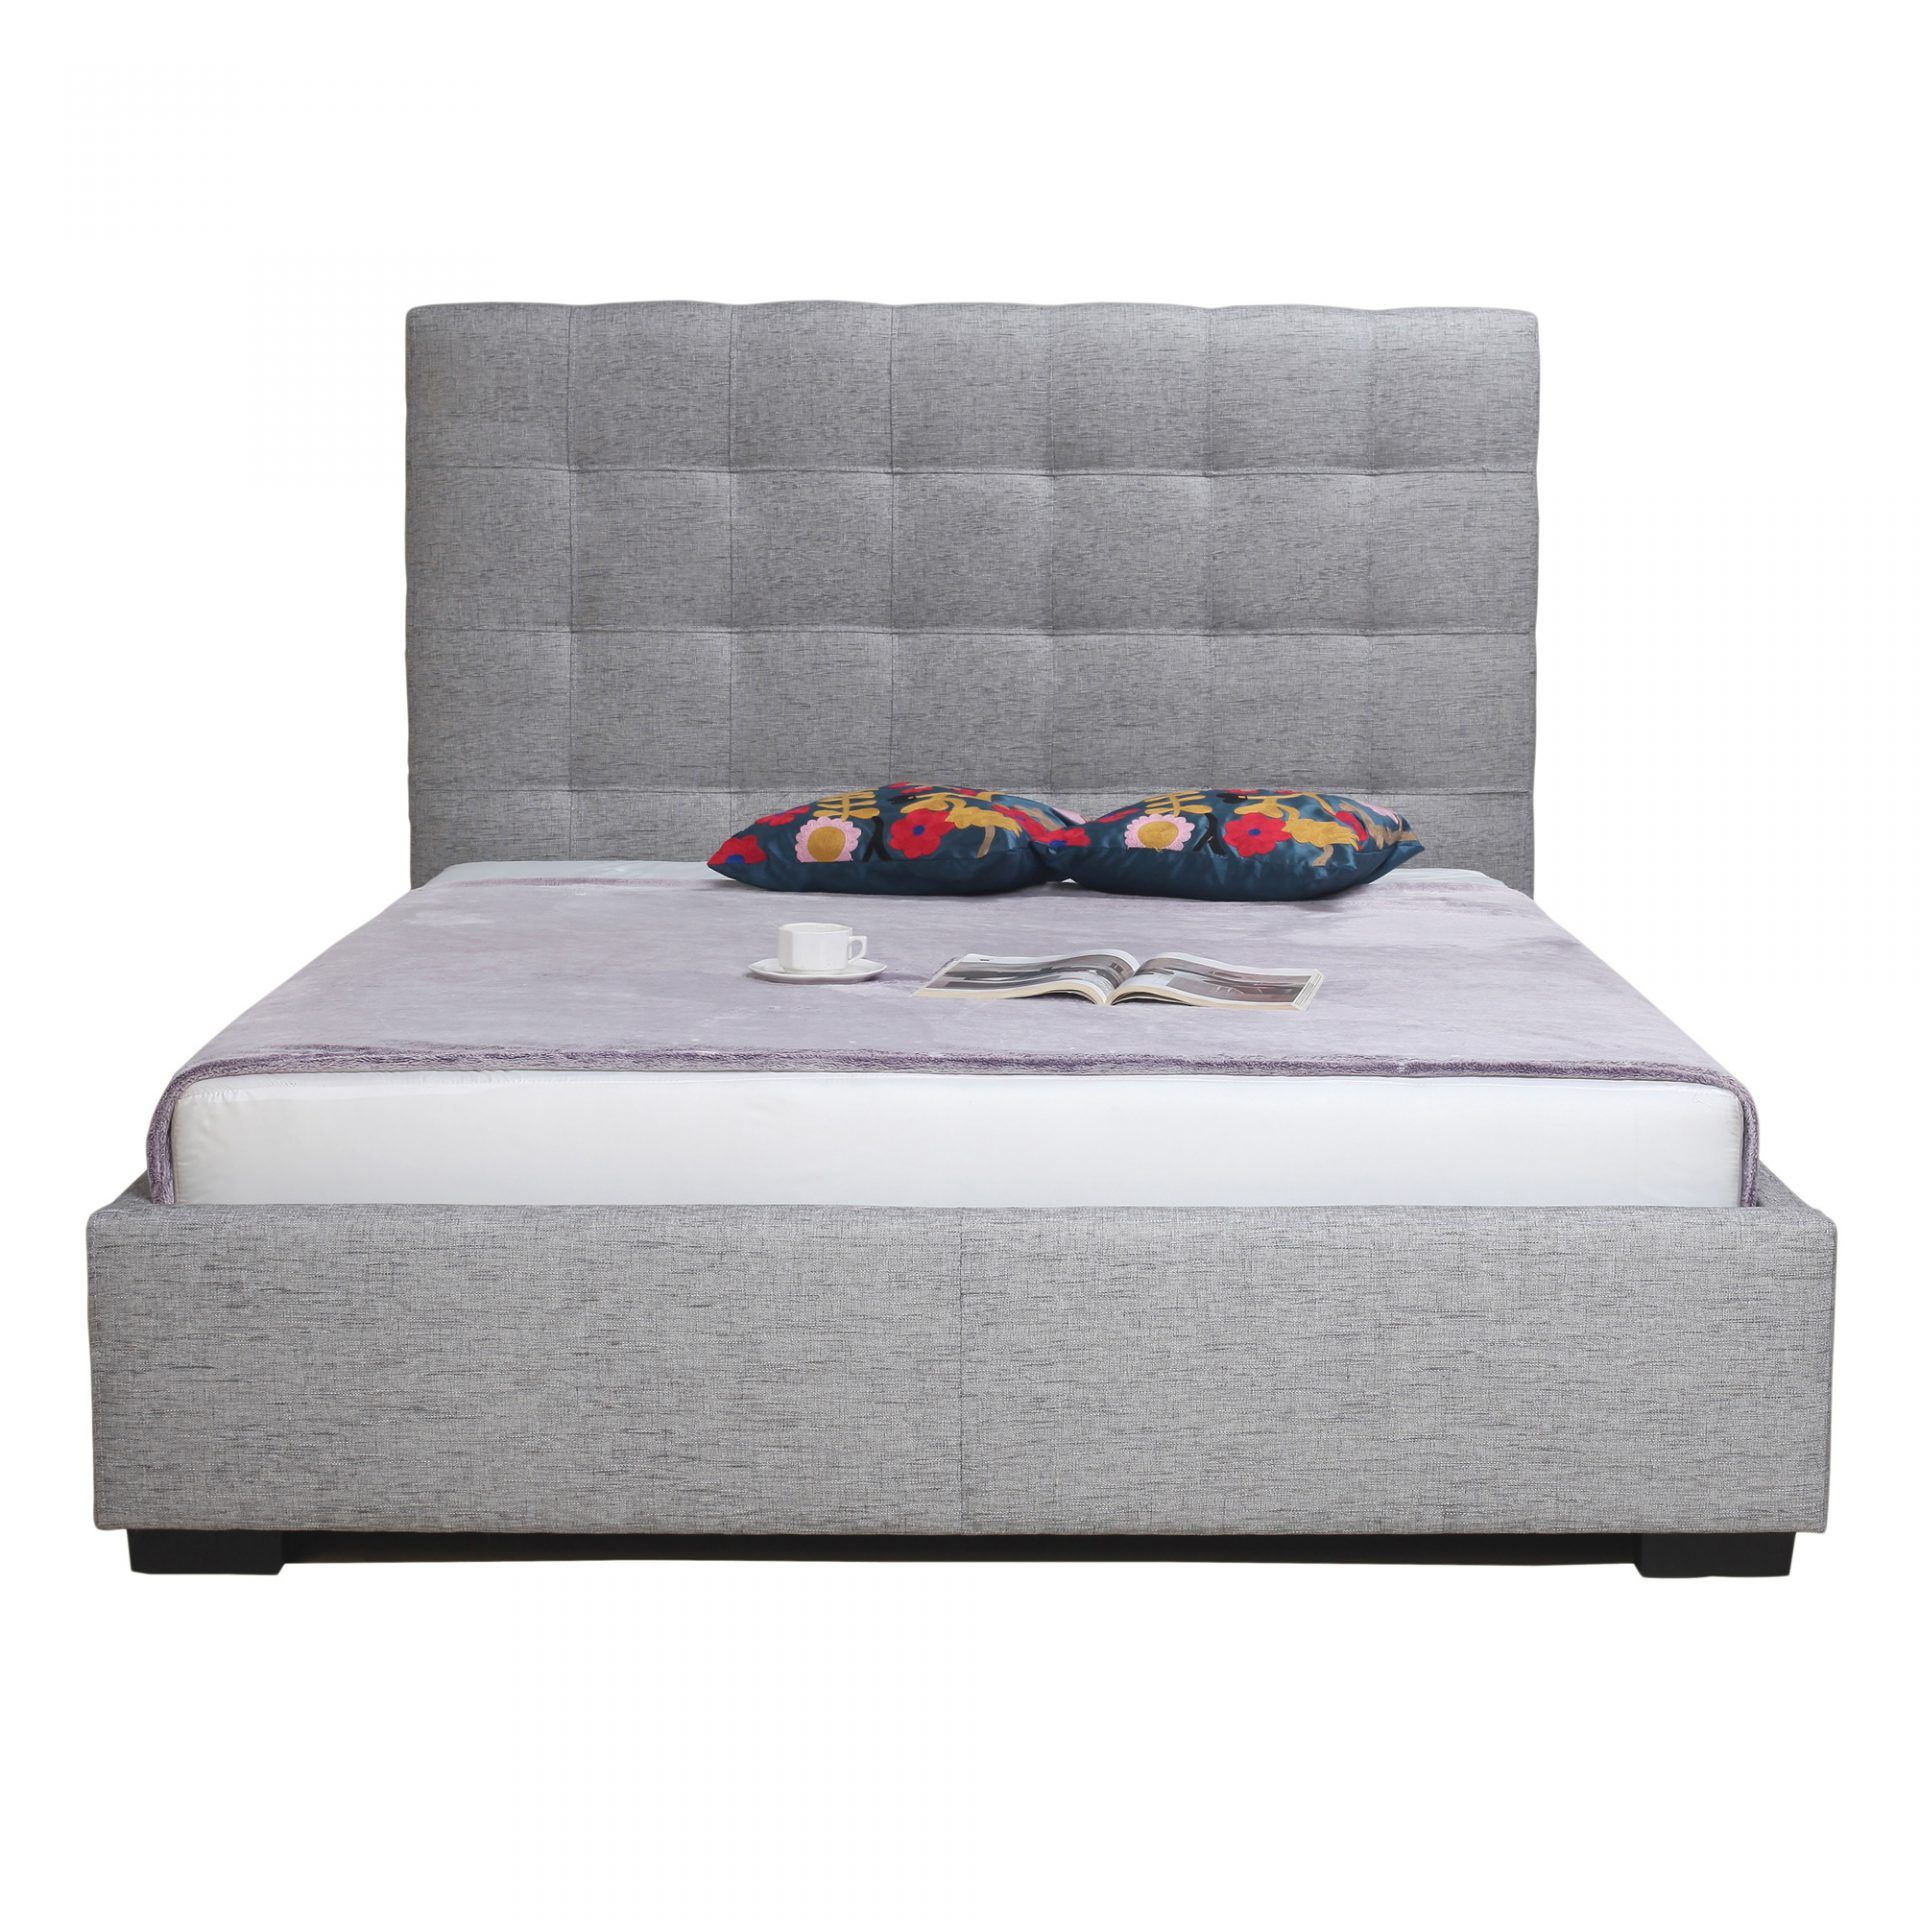 Belle Storage Bed King Light Grey Fabric - Beds - MOE\'S Wholesale ...